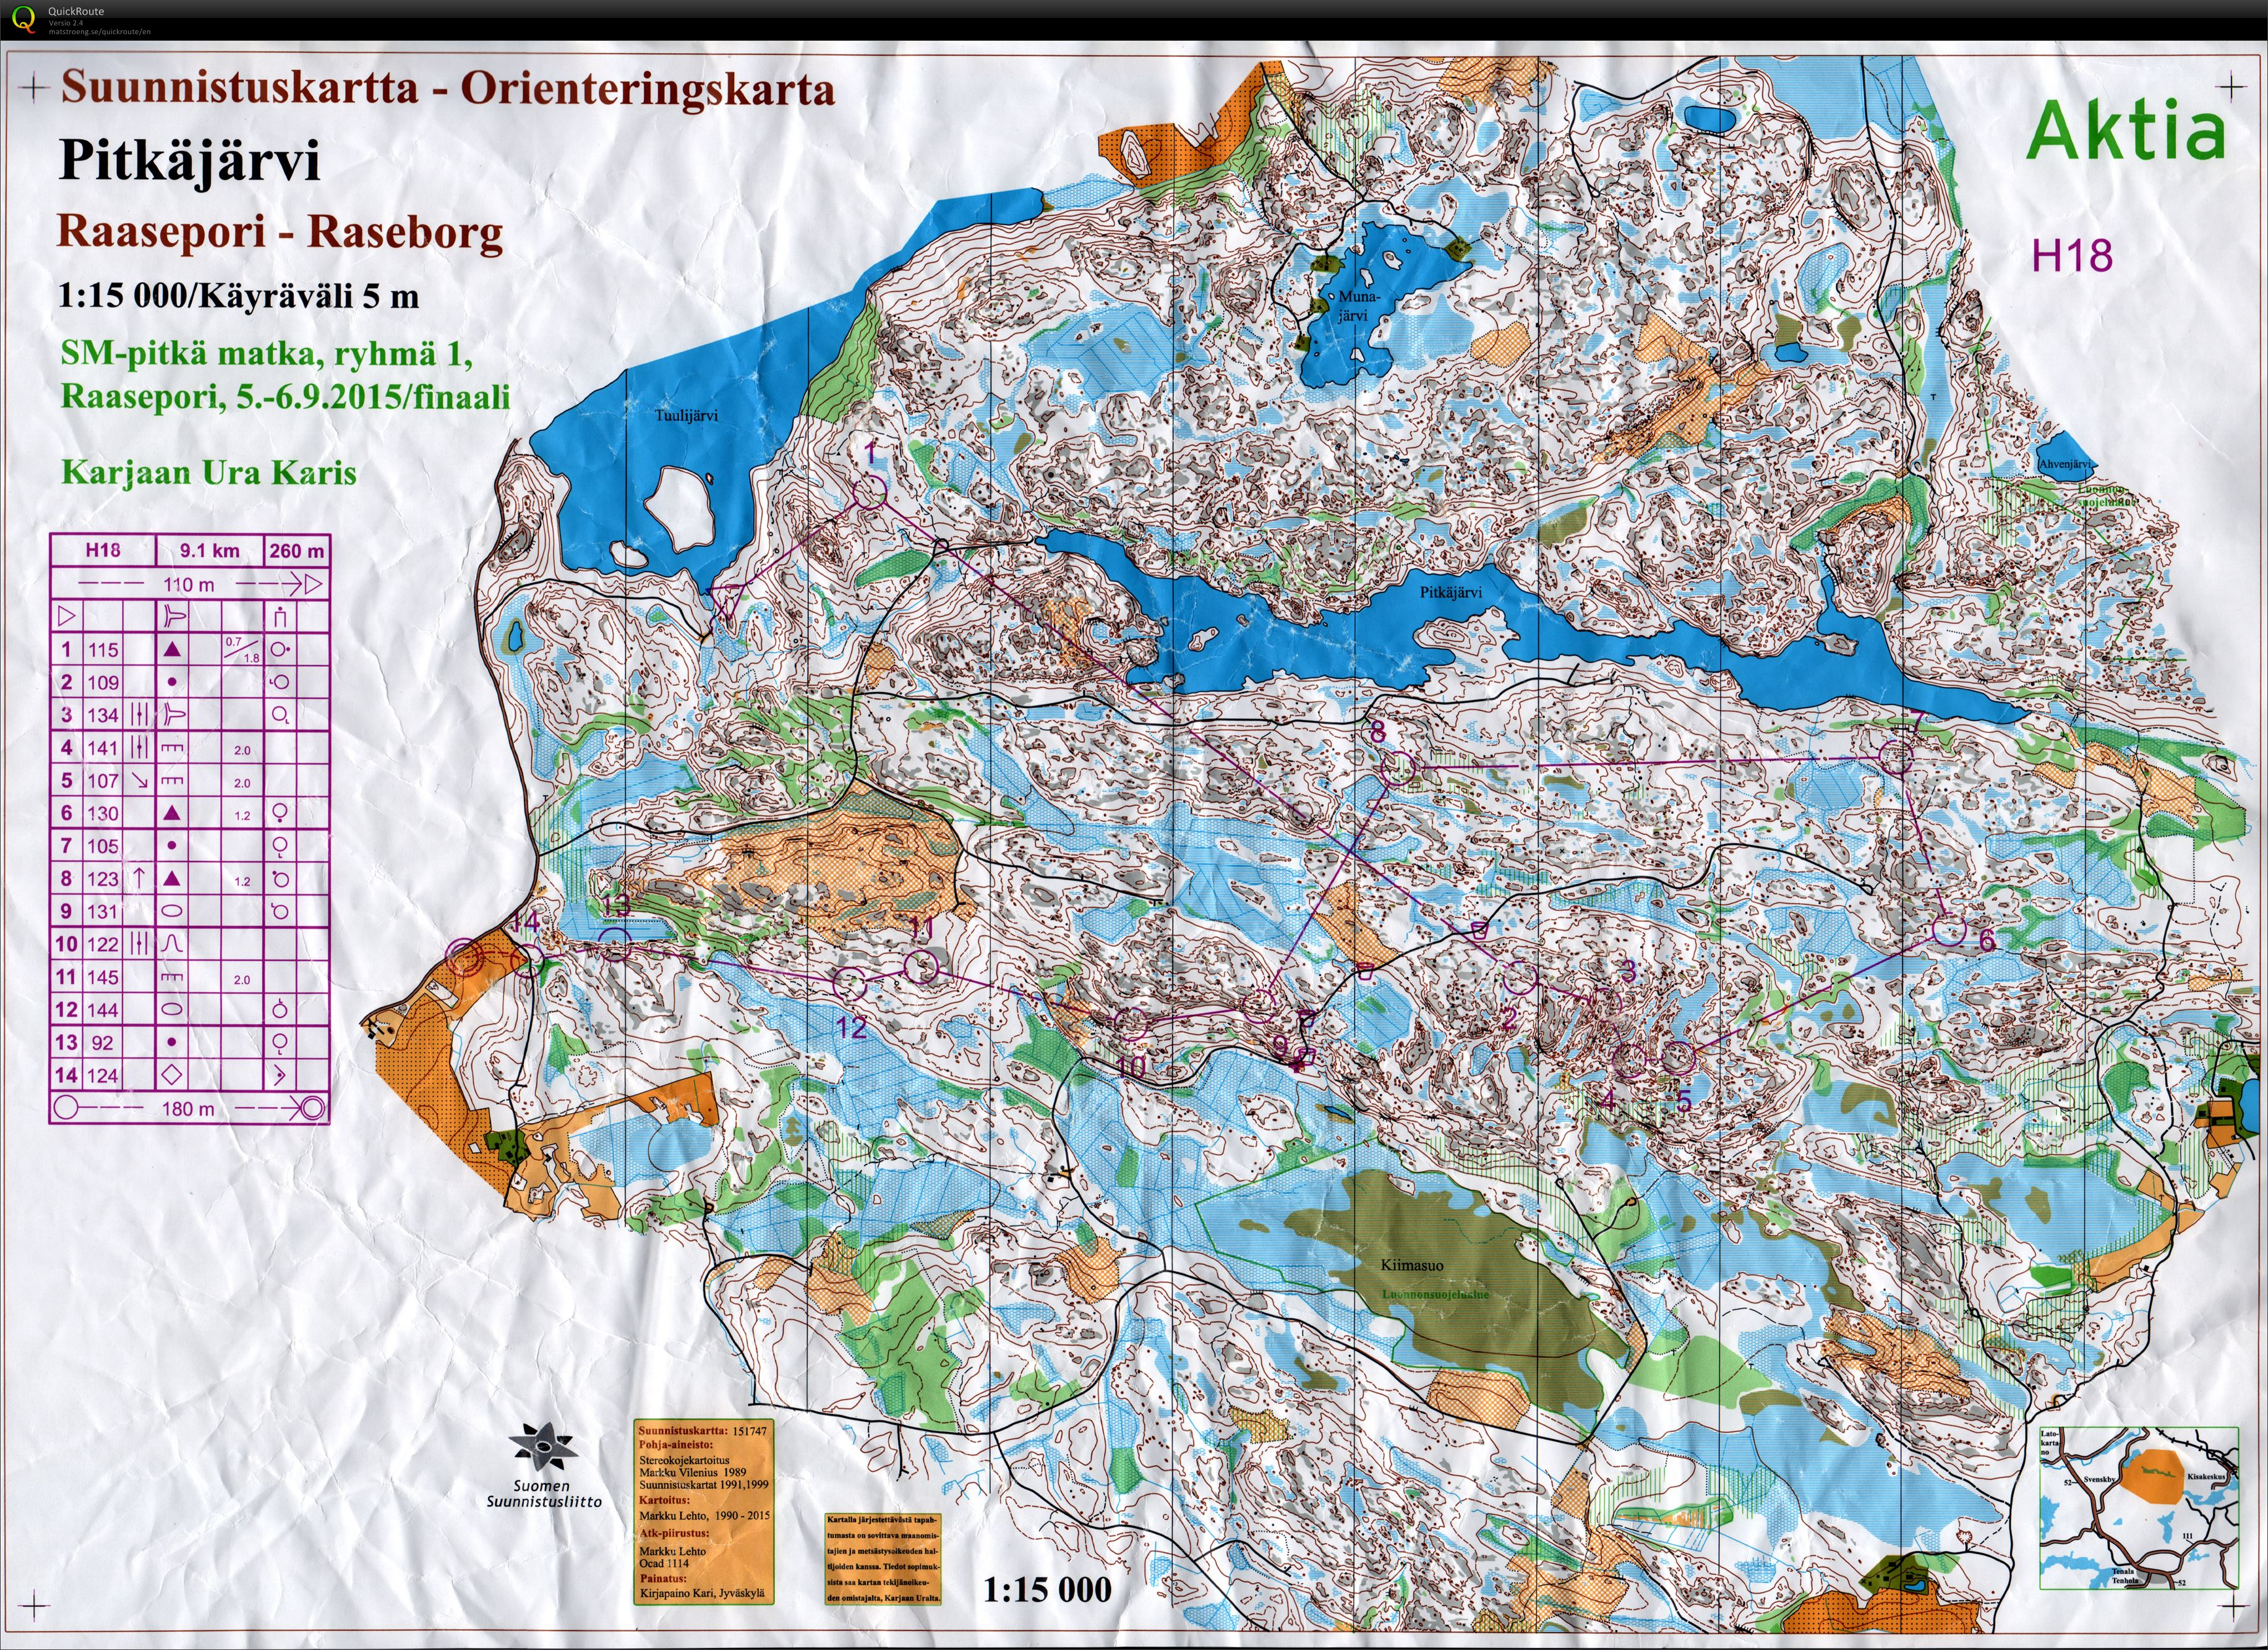 Sm Pitka 2015 September 6th 2015 Orienteering Map From Juho Ylinen